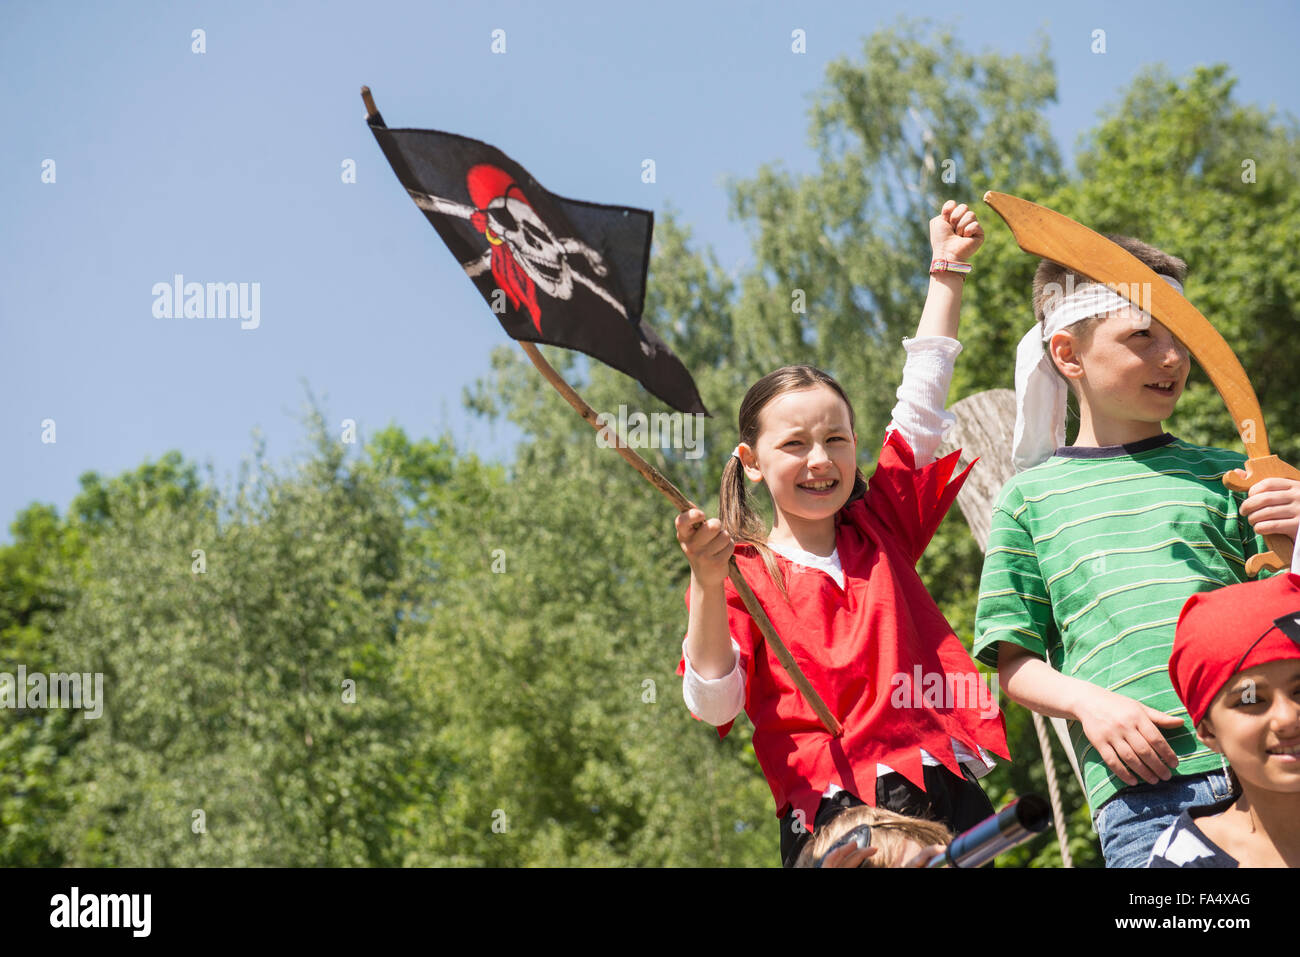 Girl holding pirate flag with her friends in adventure playground, Bavaria, Germany - Stock Image